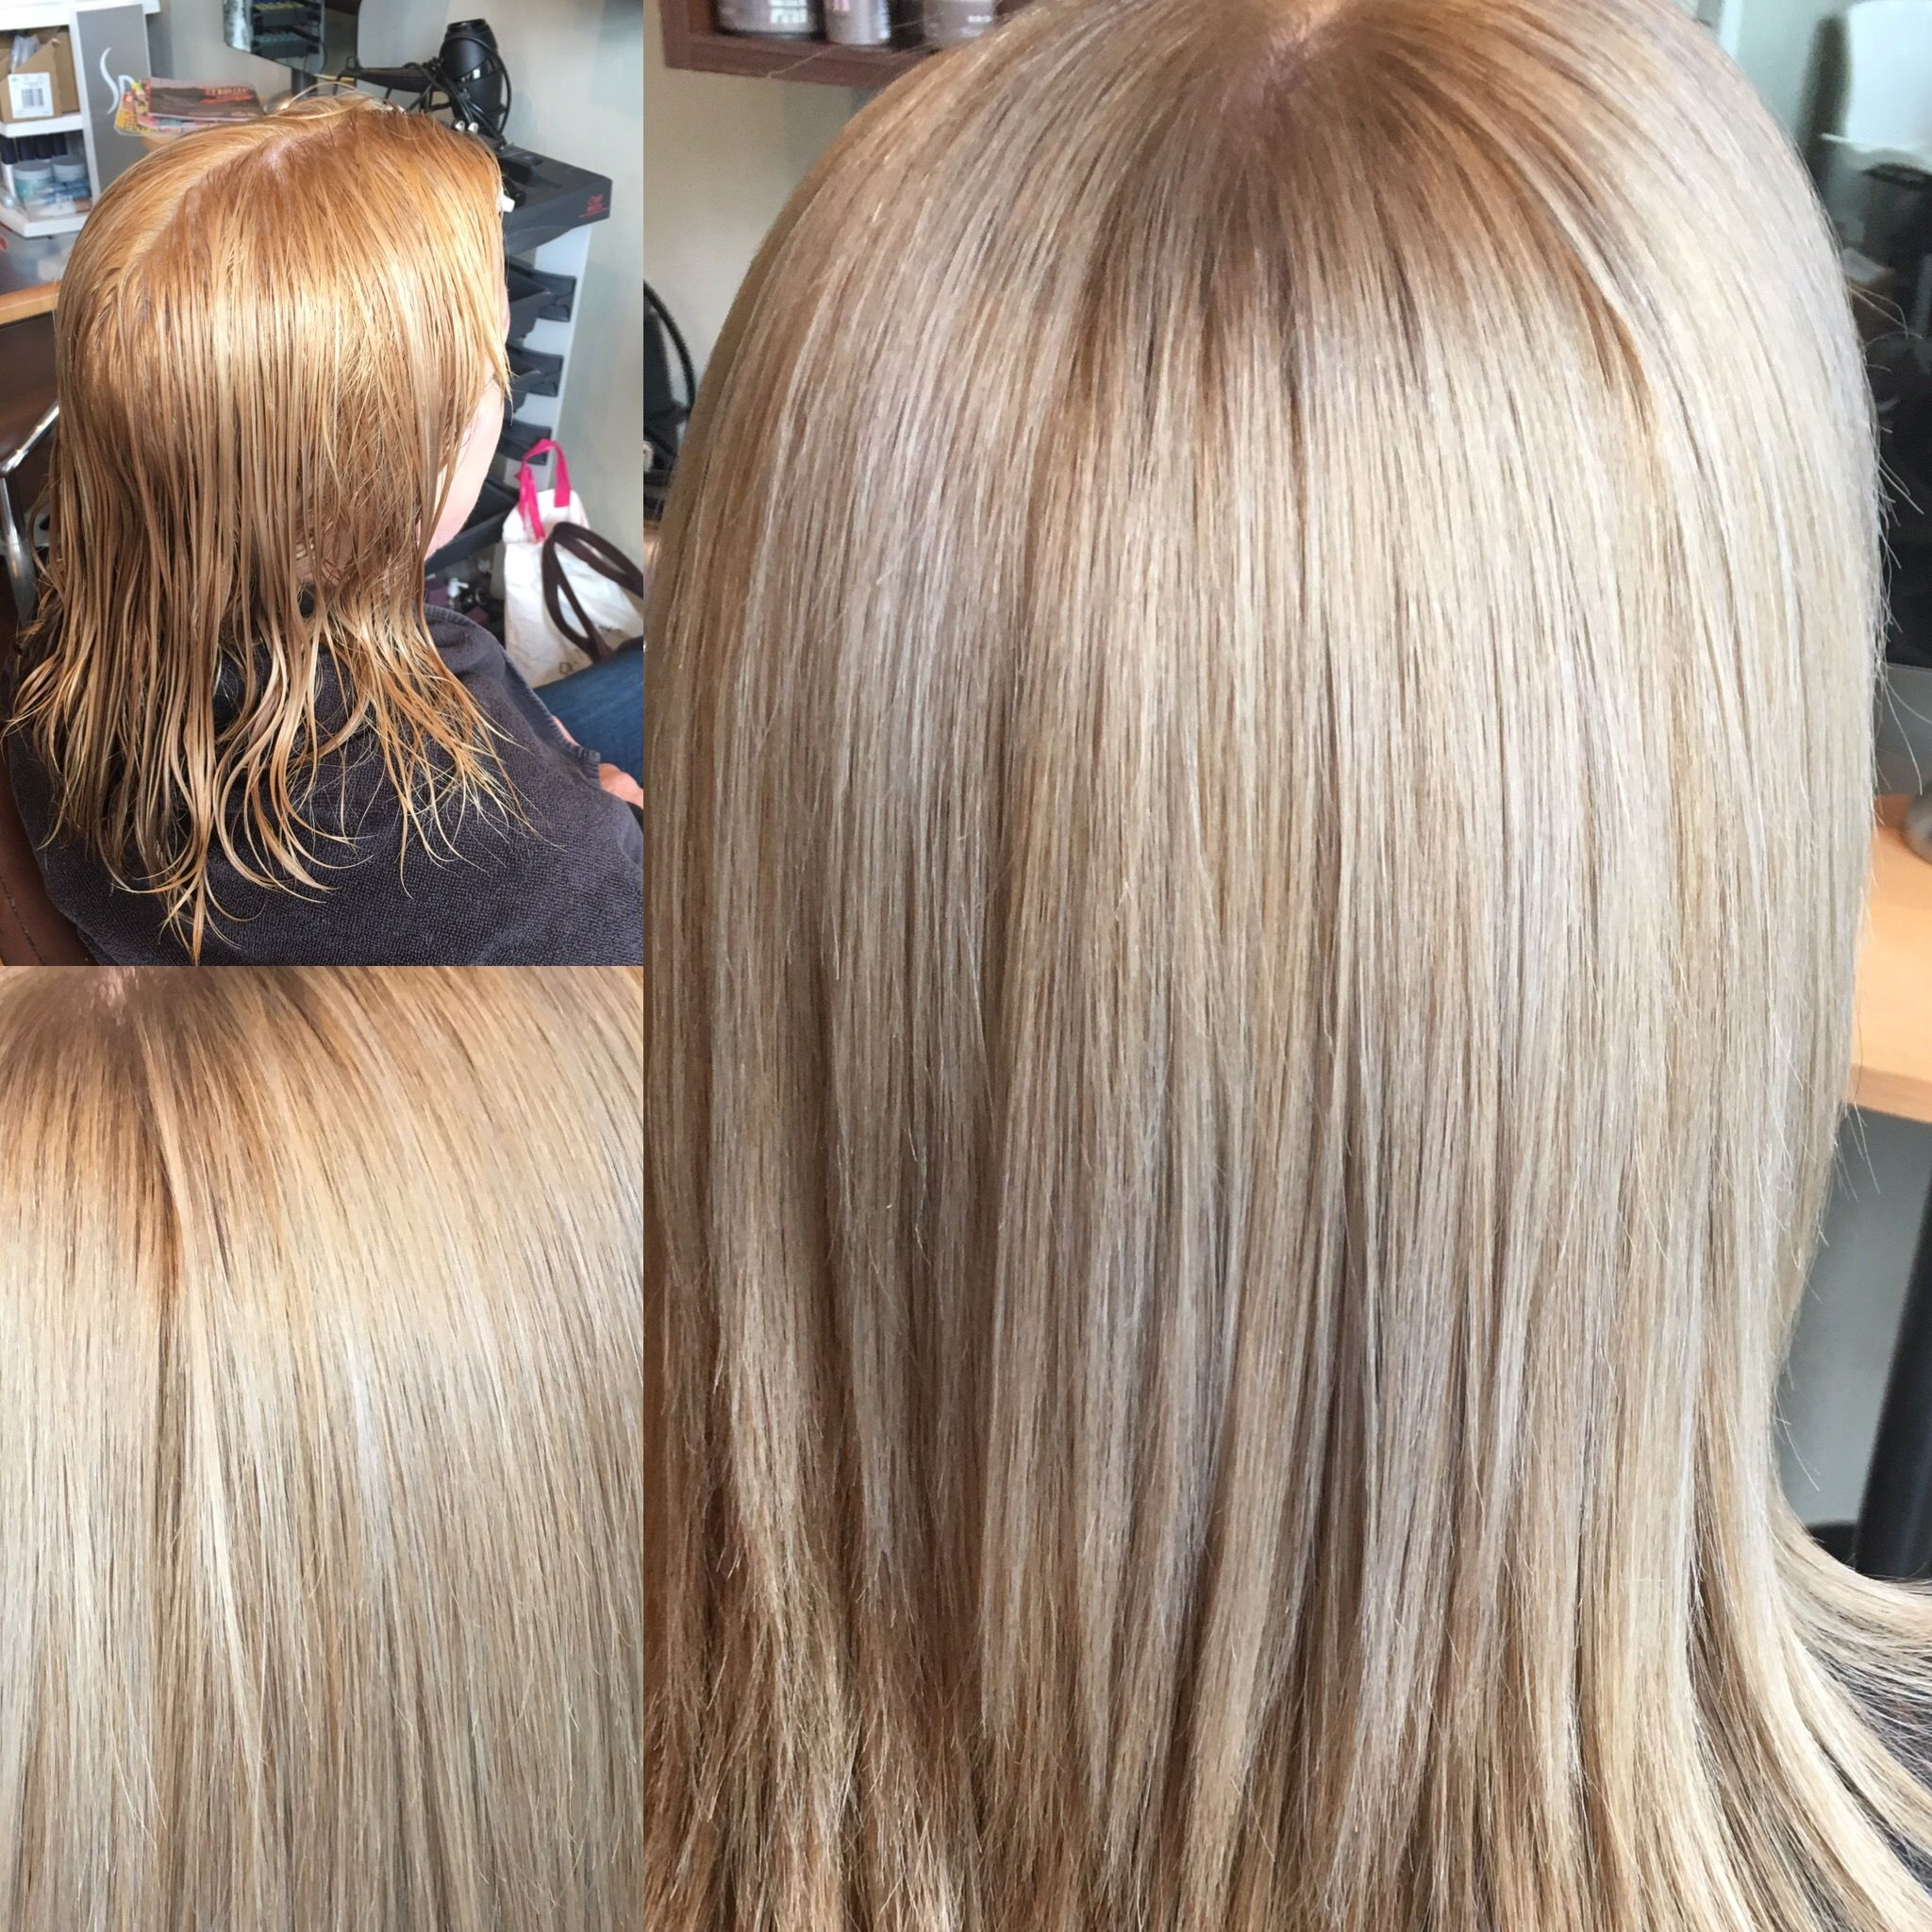 Before And After Regrowth Coloured To A Light Ash Blonde Using